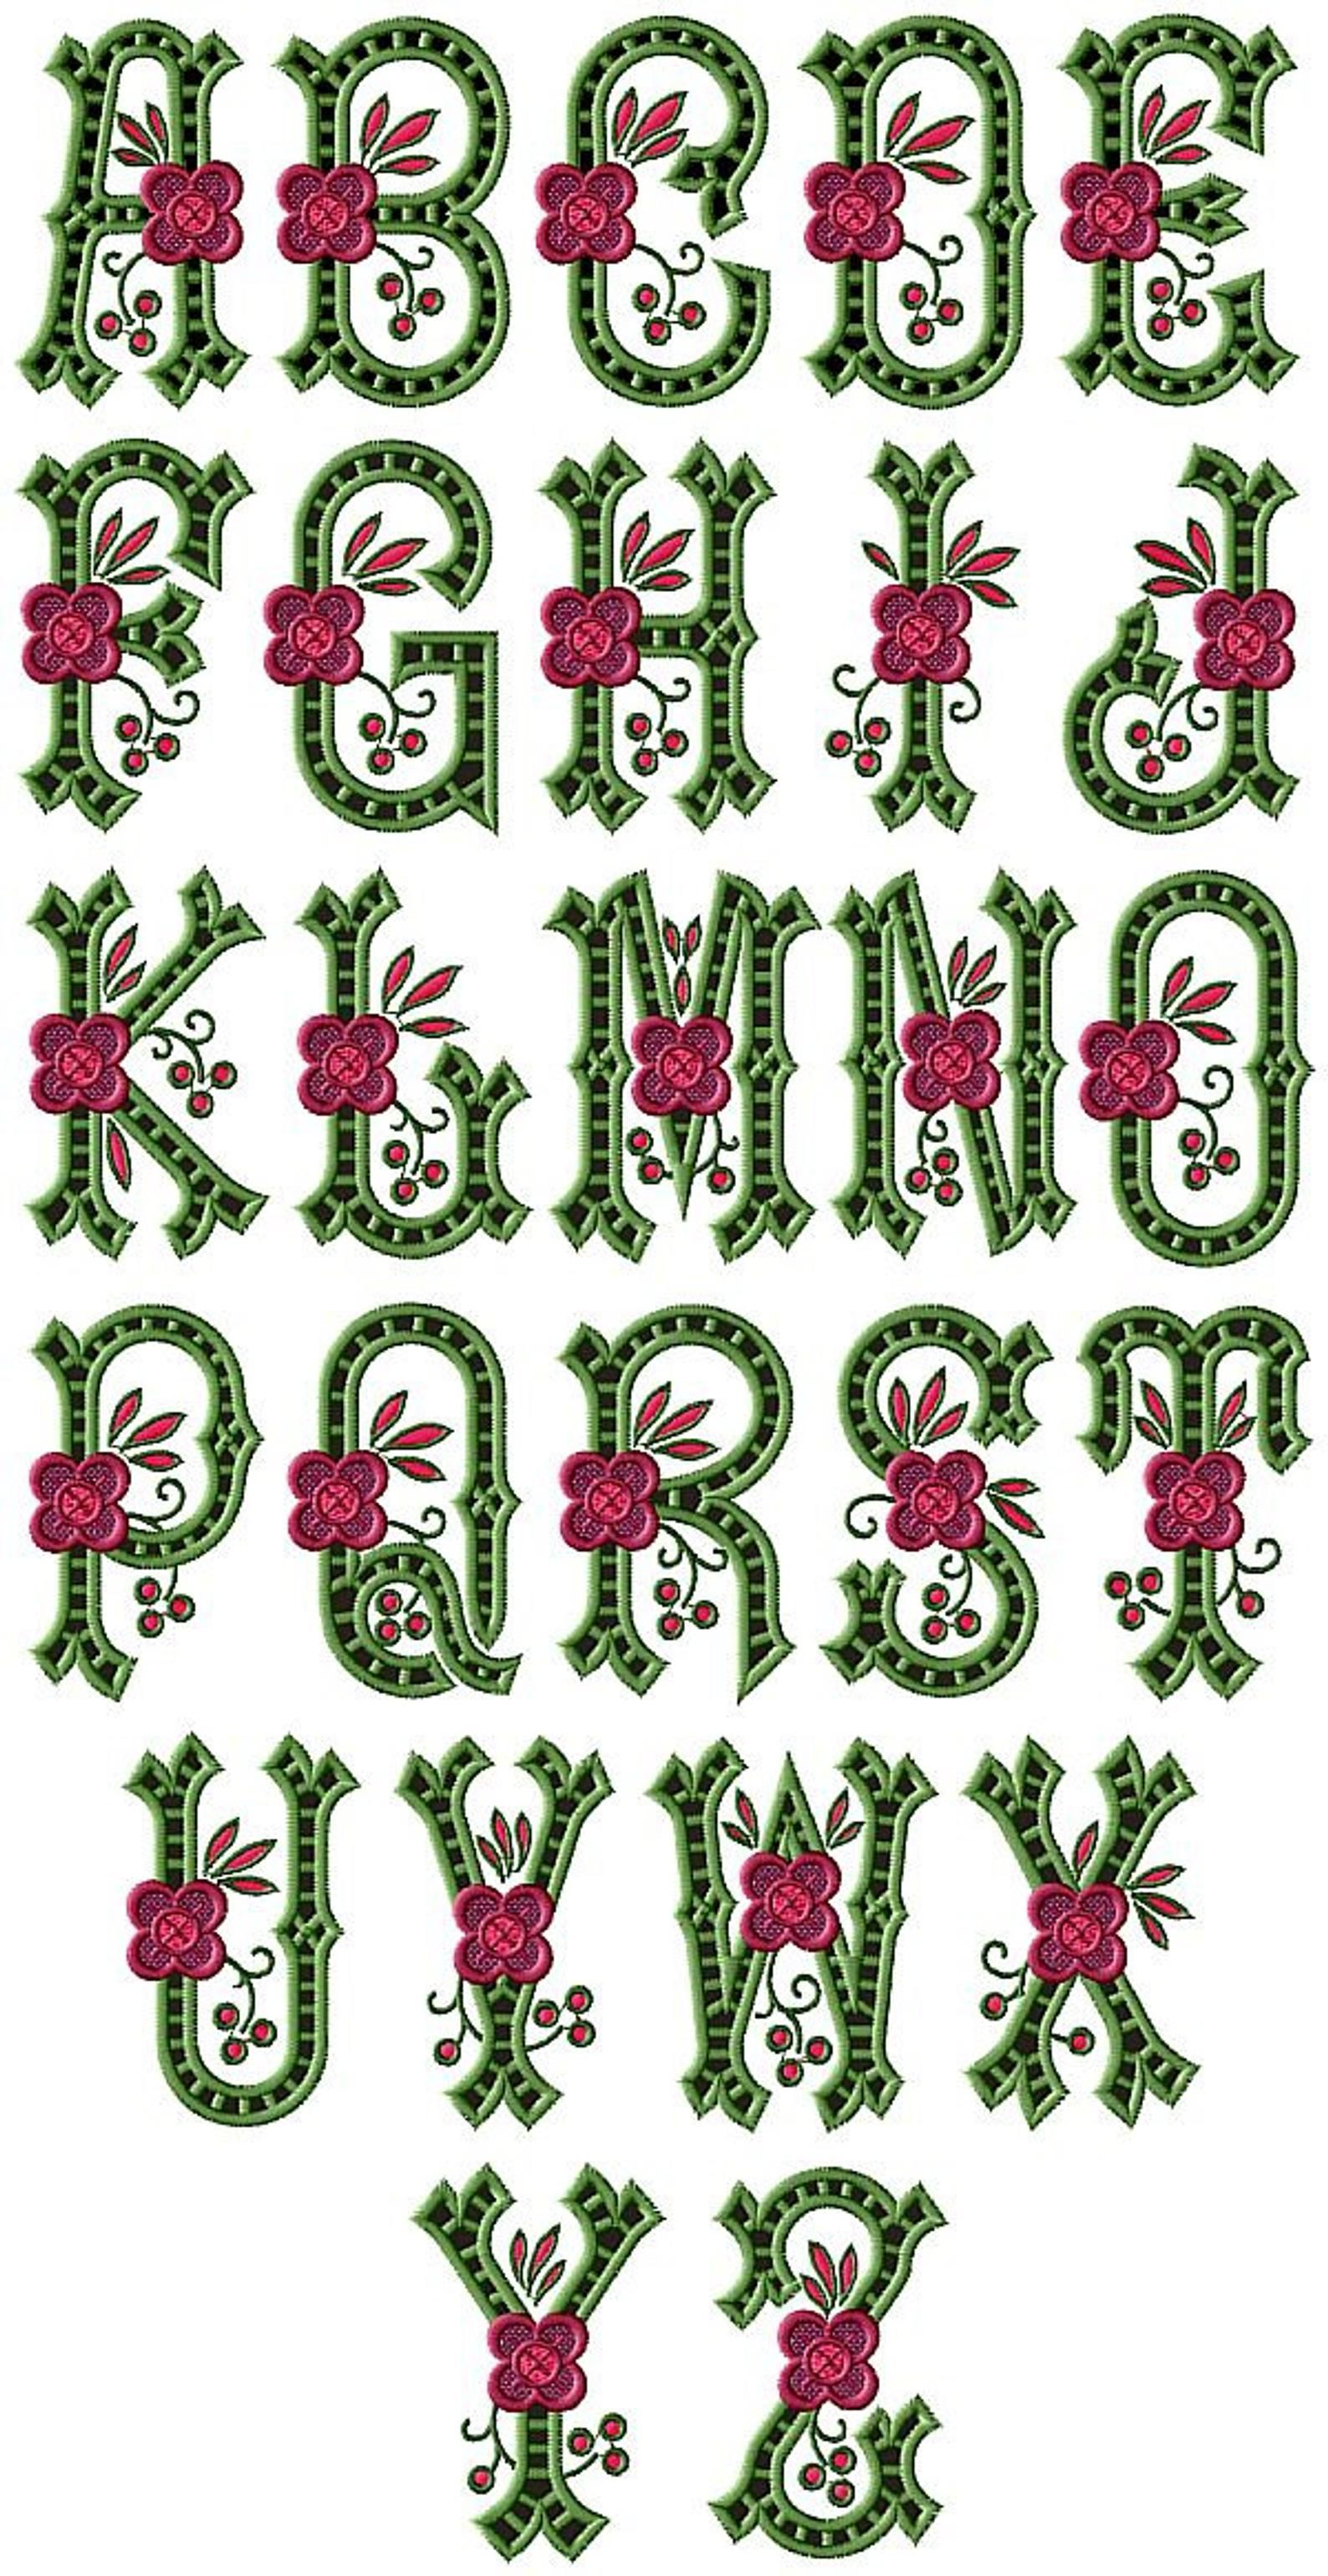 Country Charm Cutwork Alphabet 26 Machine Embroidery Letters Etsy 2021 刺繍フォント 機械刺繍デザイン 刺繡柄